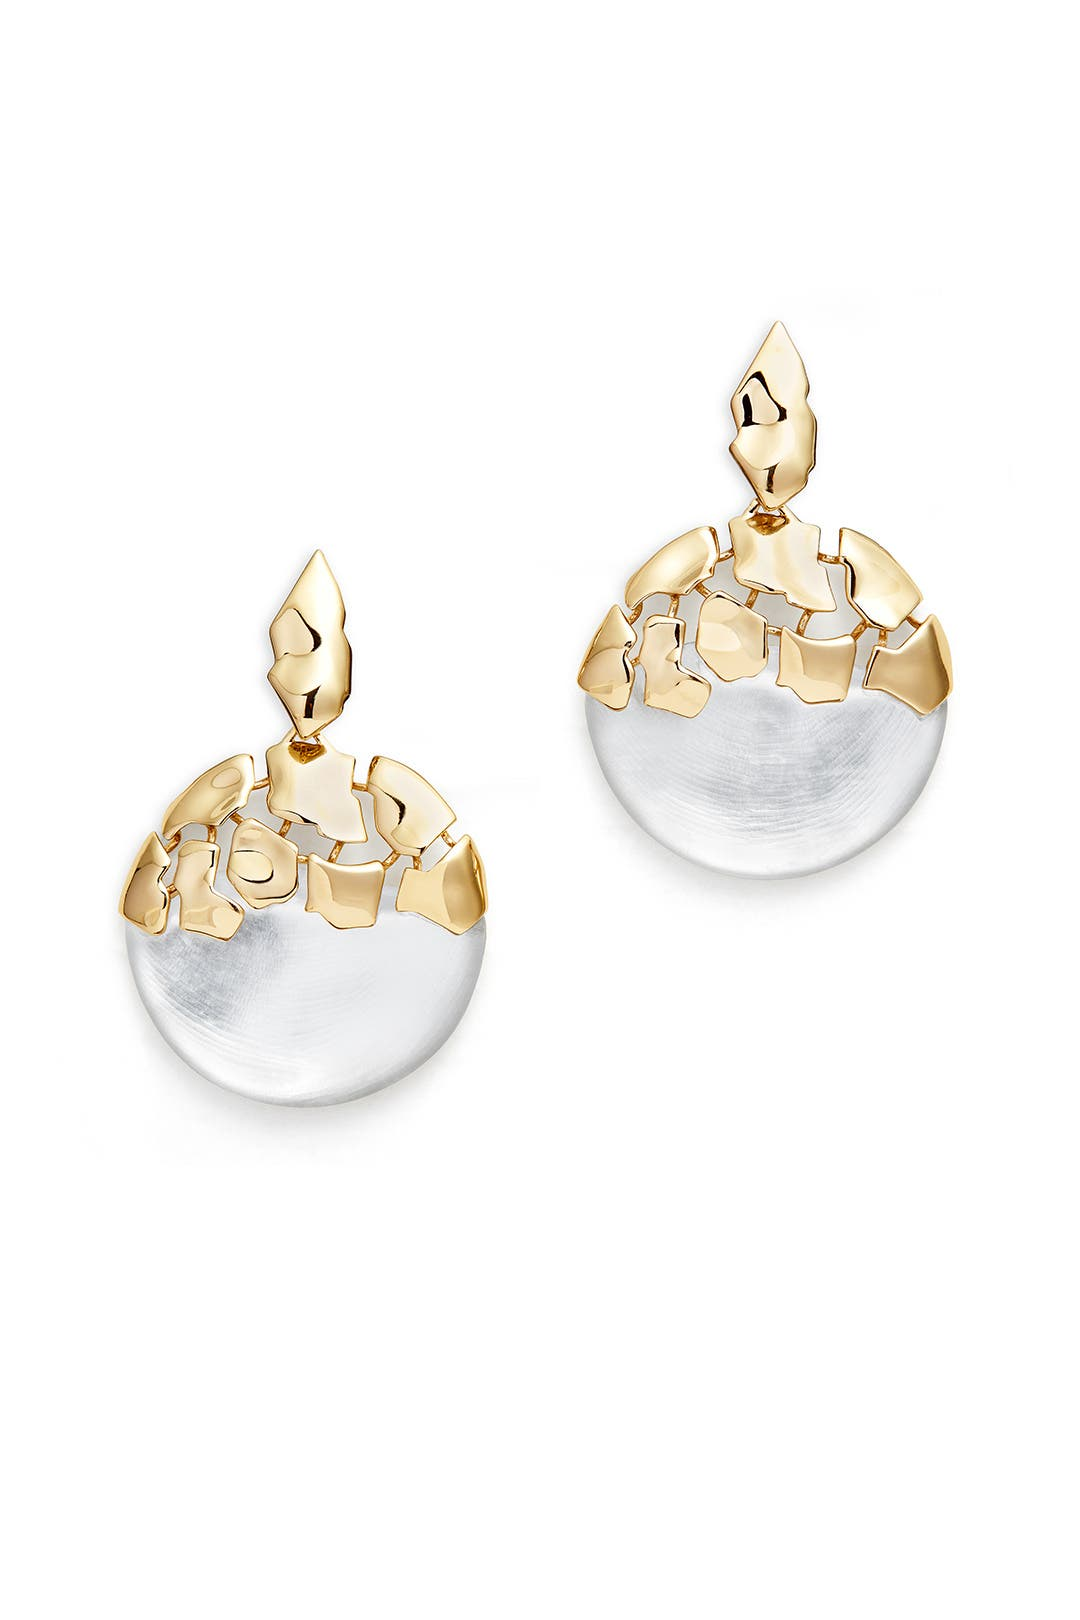 Molten Lucite Earrings by Alexis Bittar